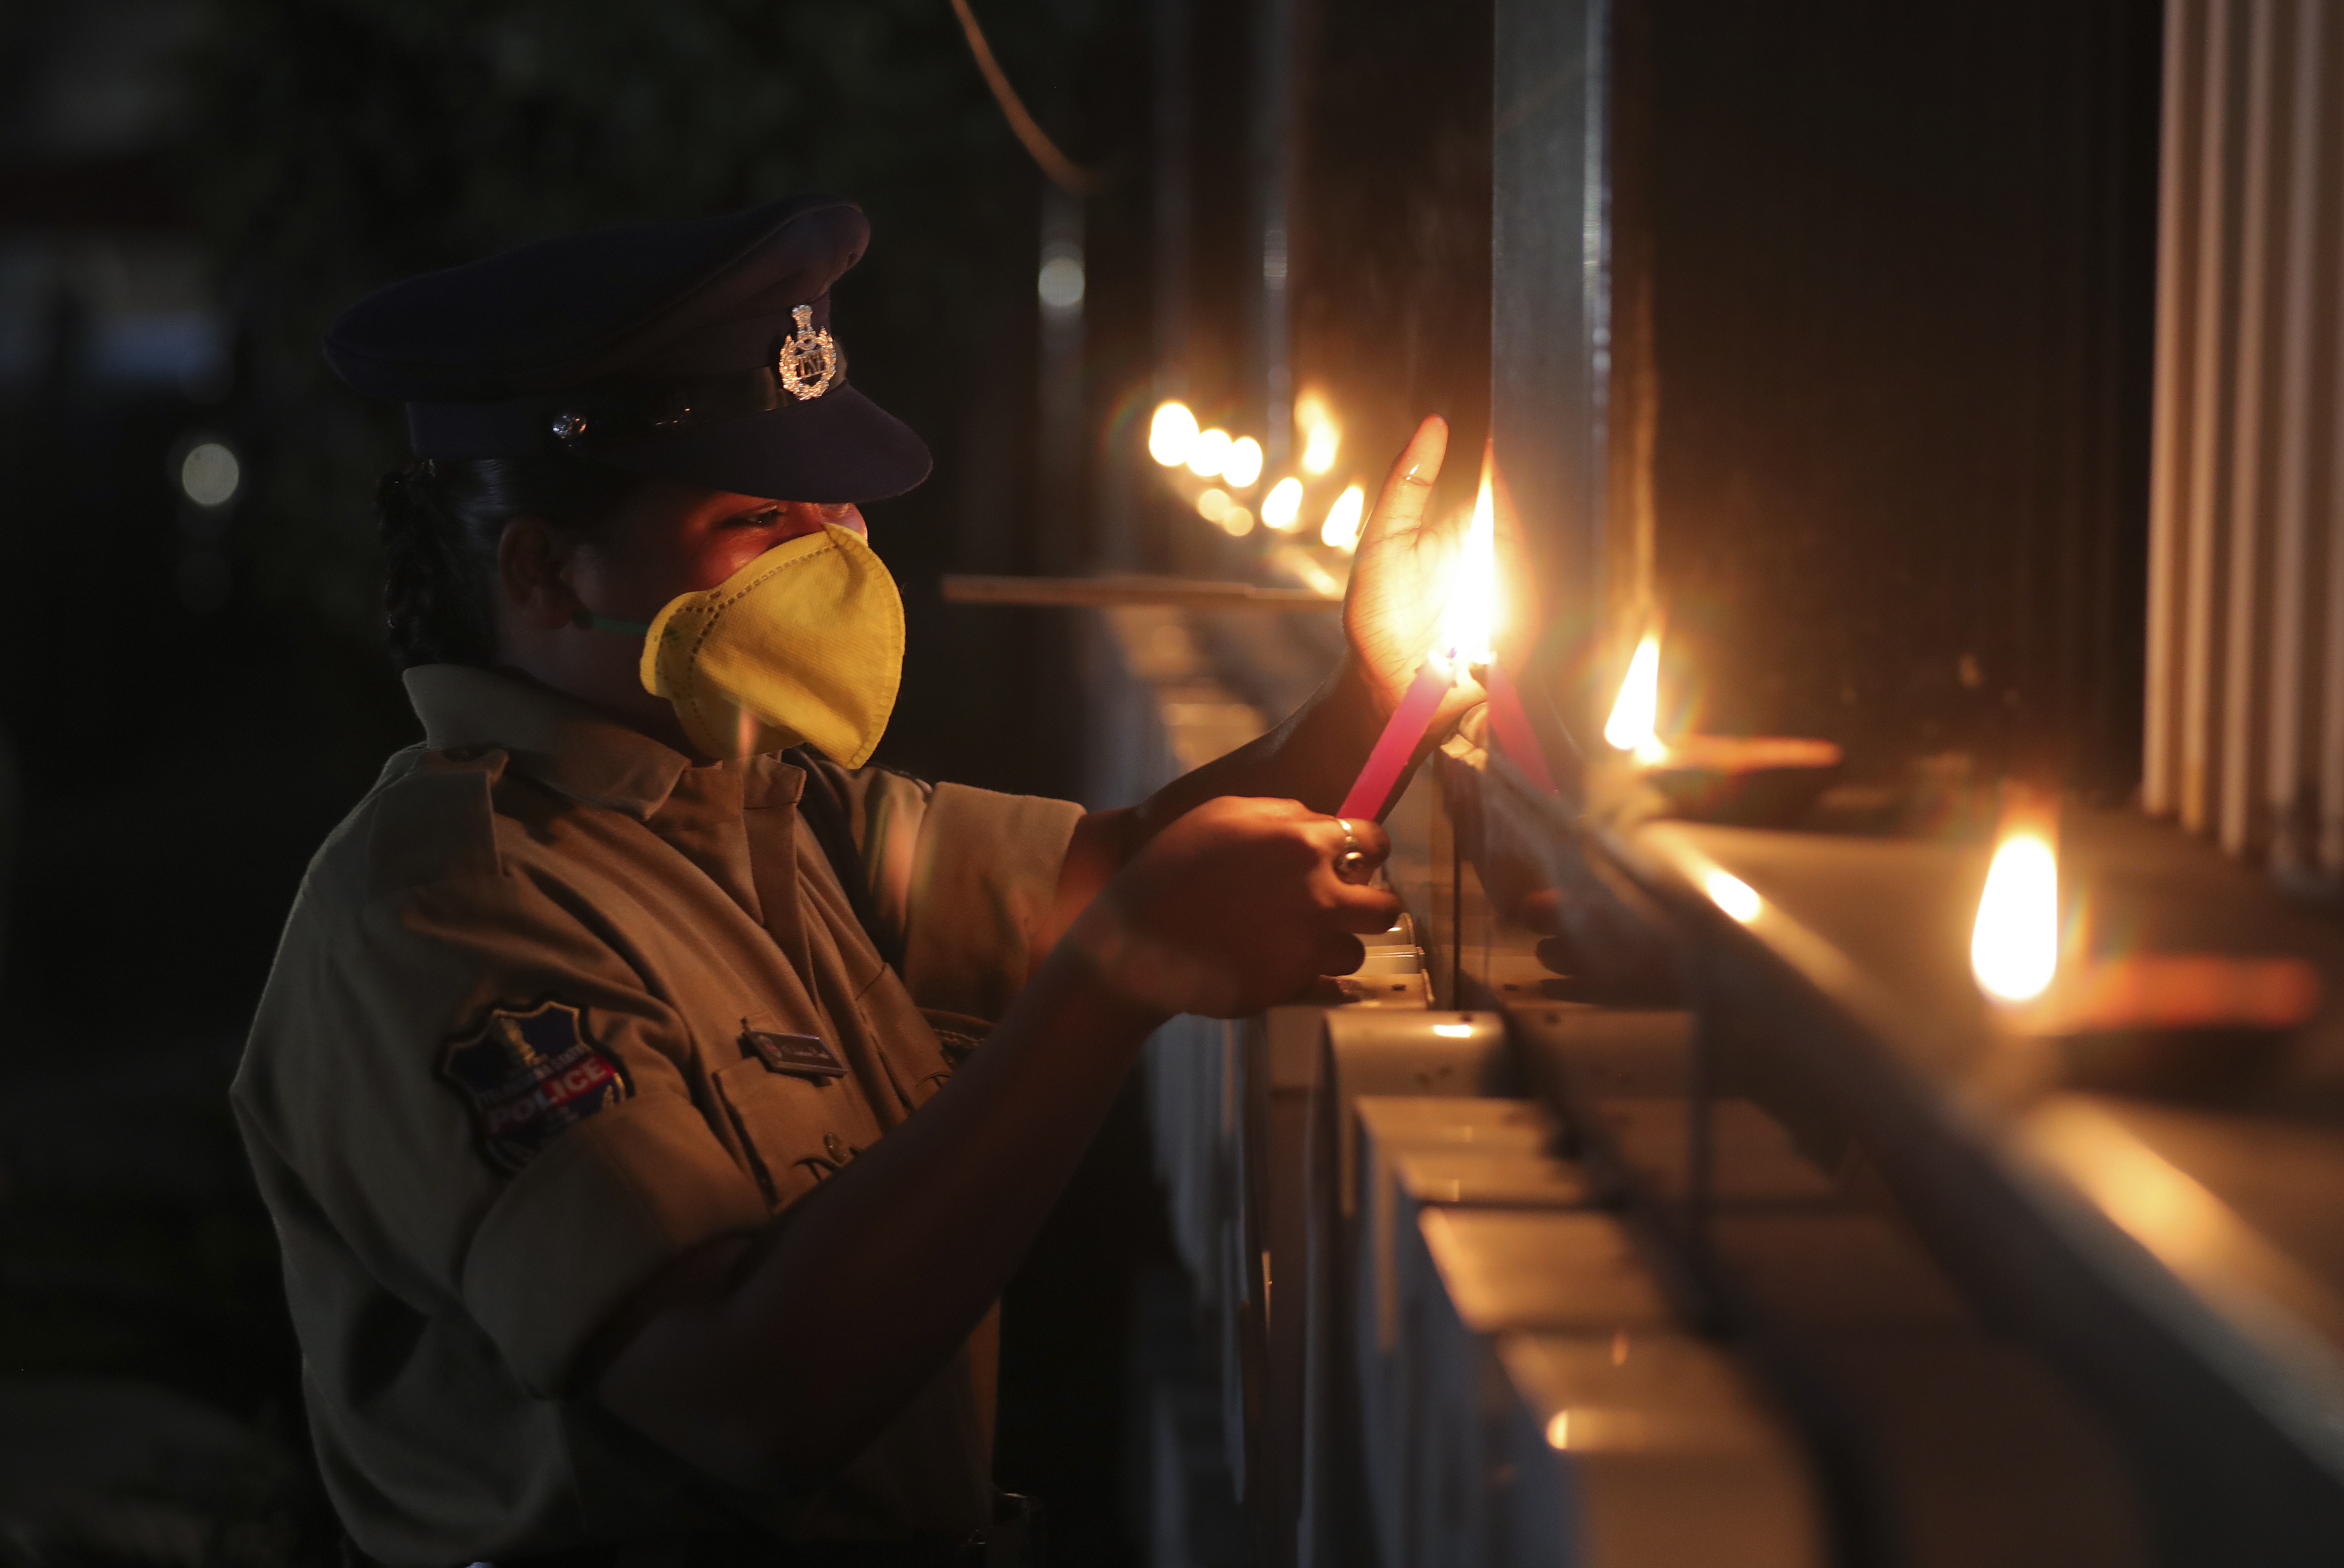 An Indian policewoman lights earthen lamps in Hyderabad.